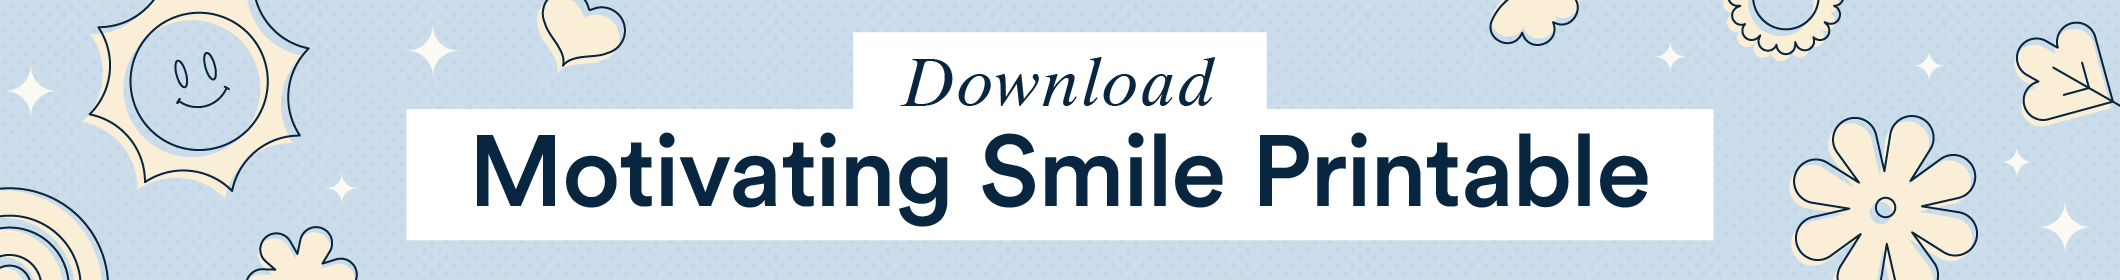 download motivating smile printable